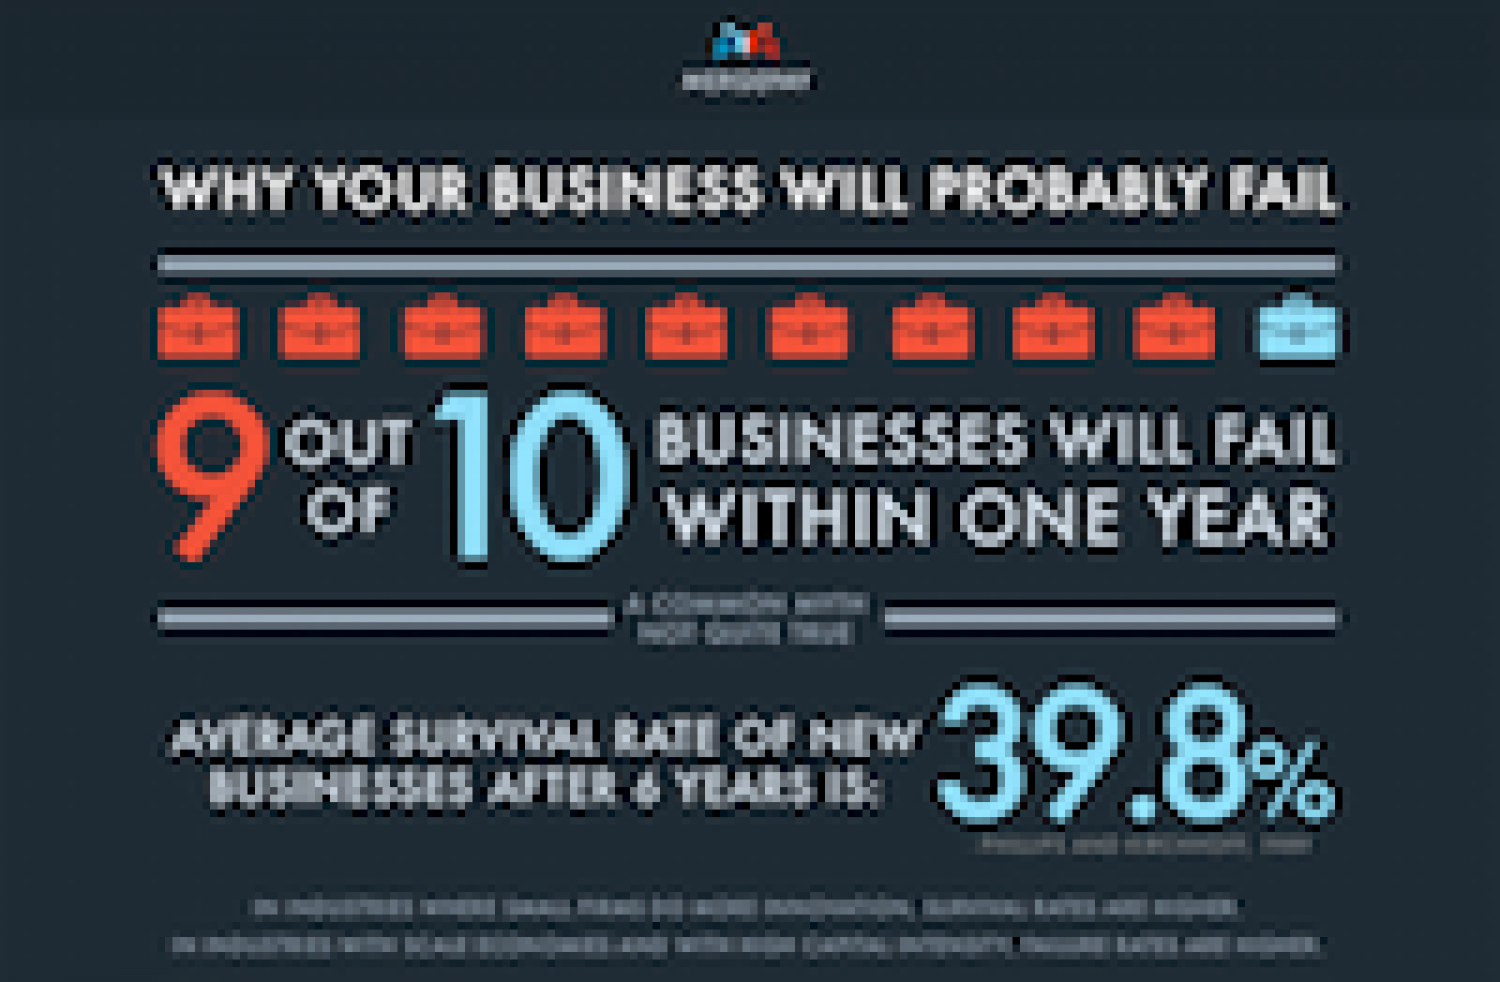 Why Your Business Will Probably Fail Infographic